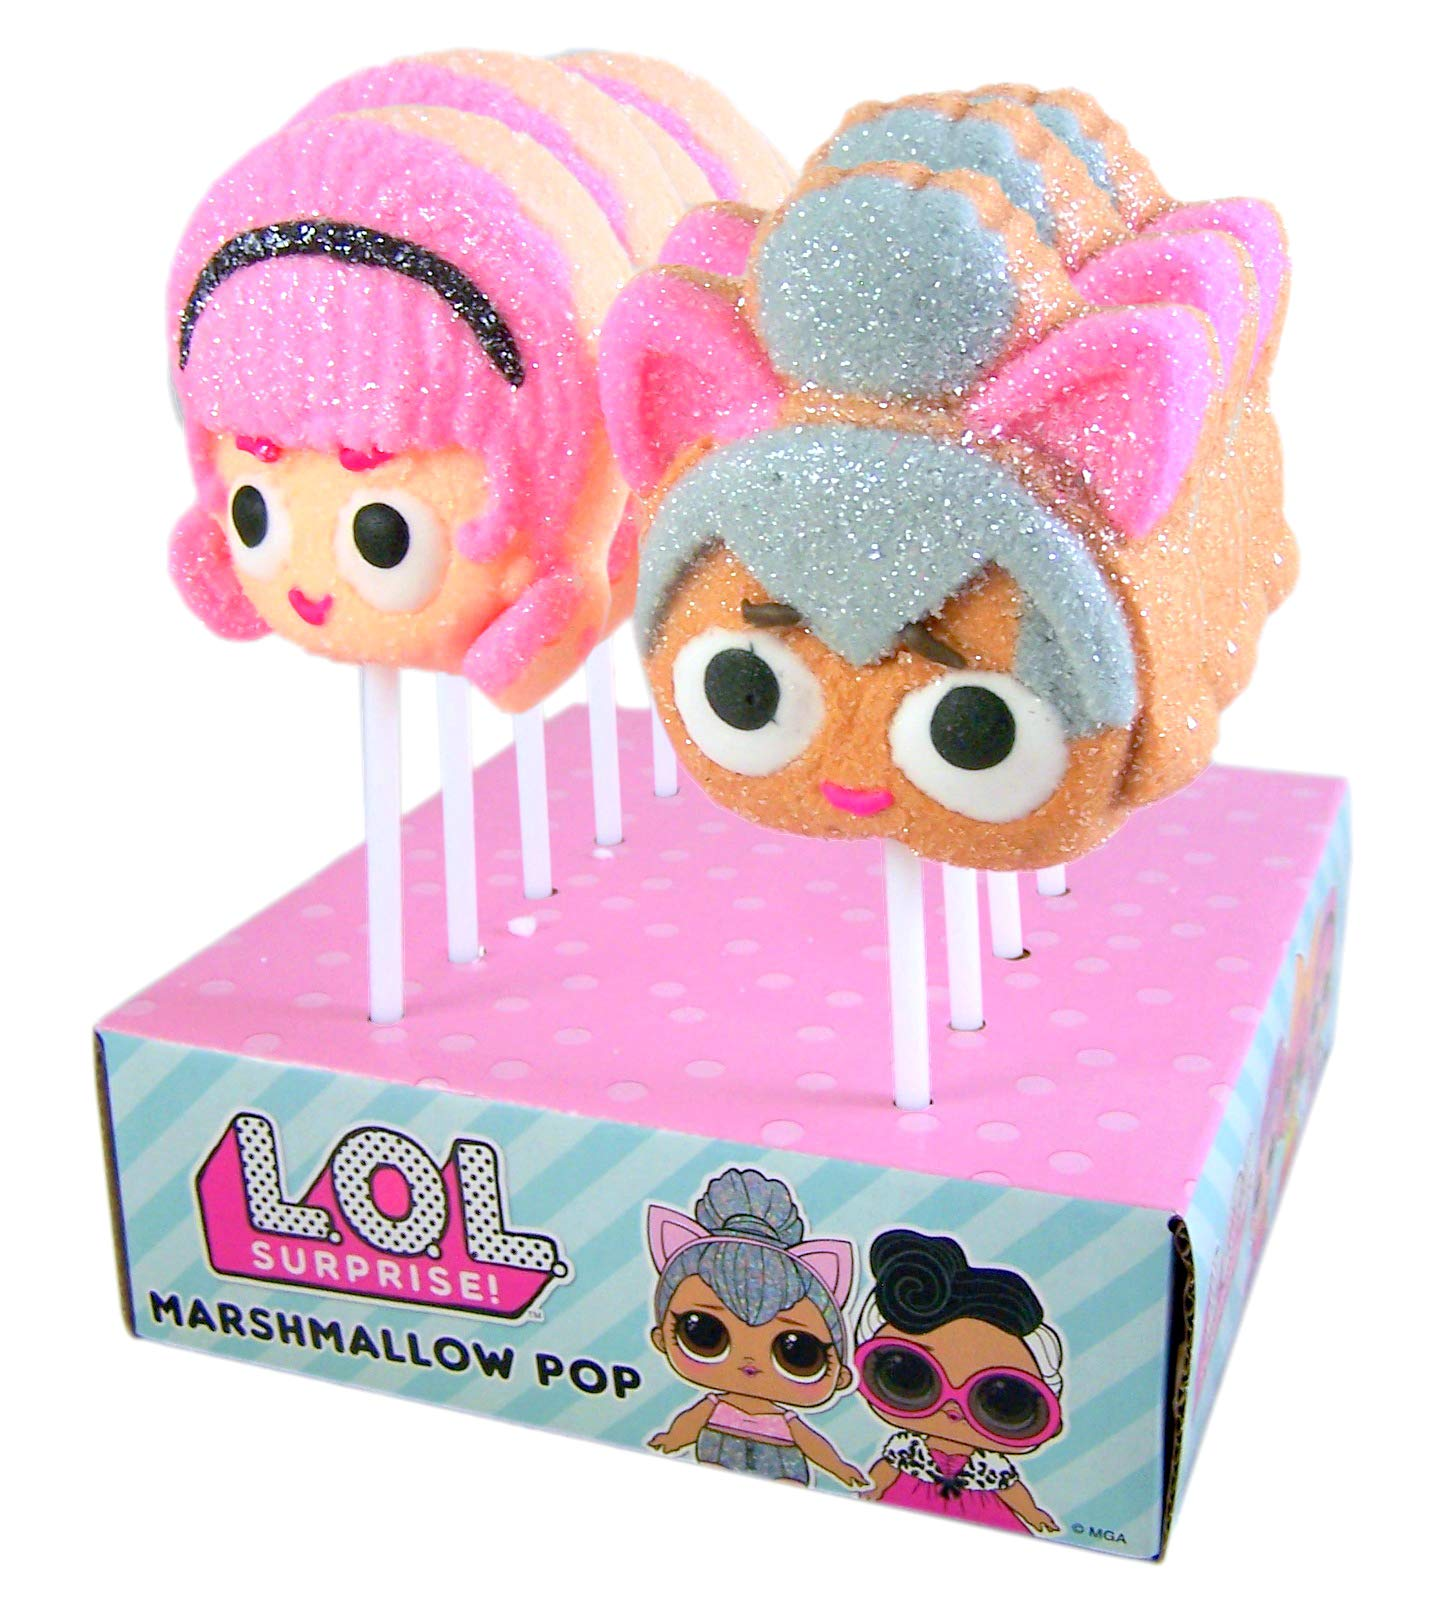 LOL Suprise Character Candy Marshmallow Pops, 1.41oz (Case of 12) by Marshmallow Pops